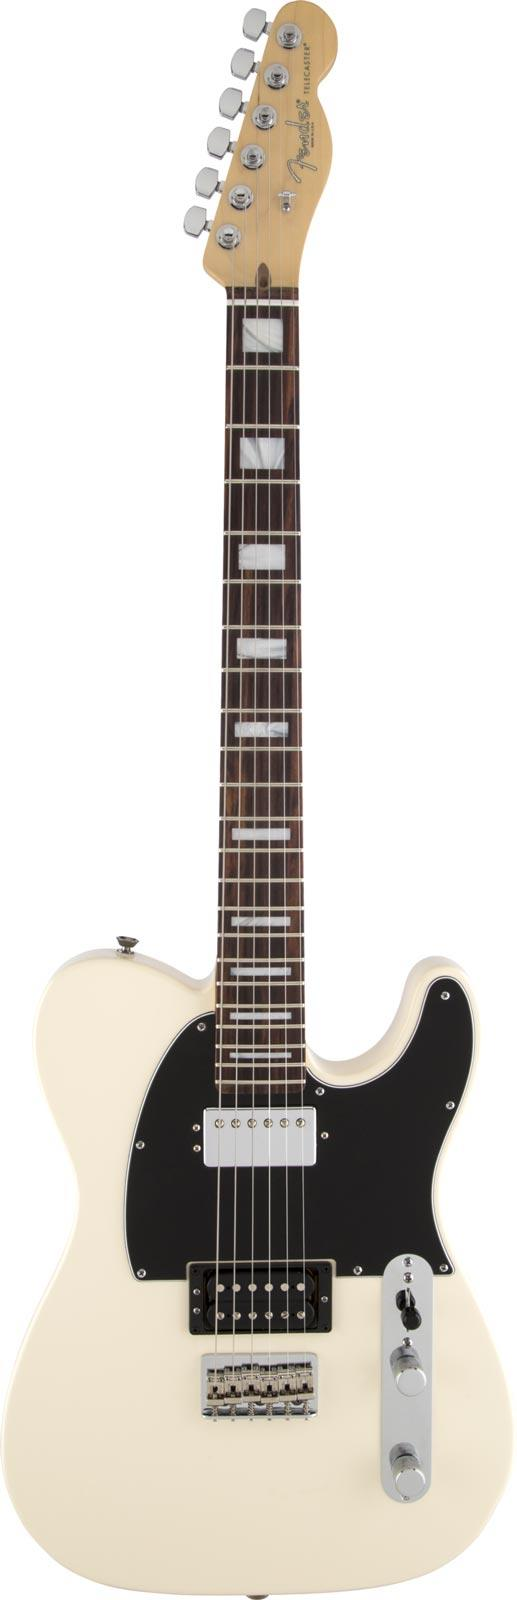 fender limited edition american standard telecaster hh olympic white keymusic. Black Bedroom Furniture Sets. Home Design Ideas